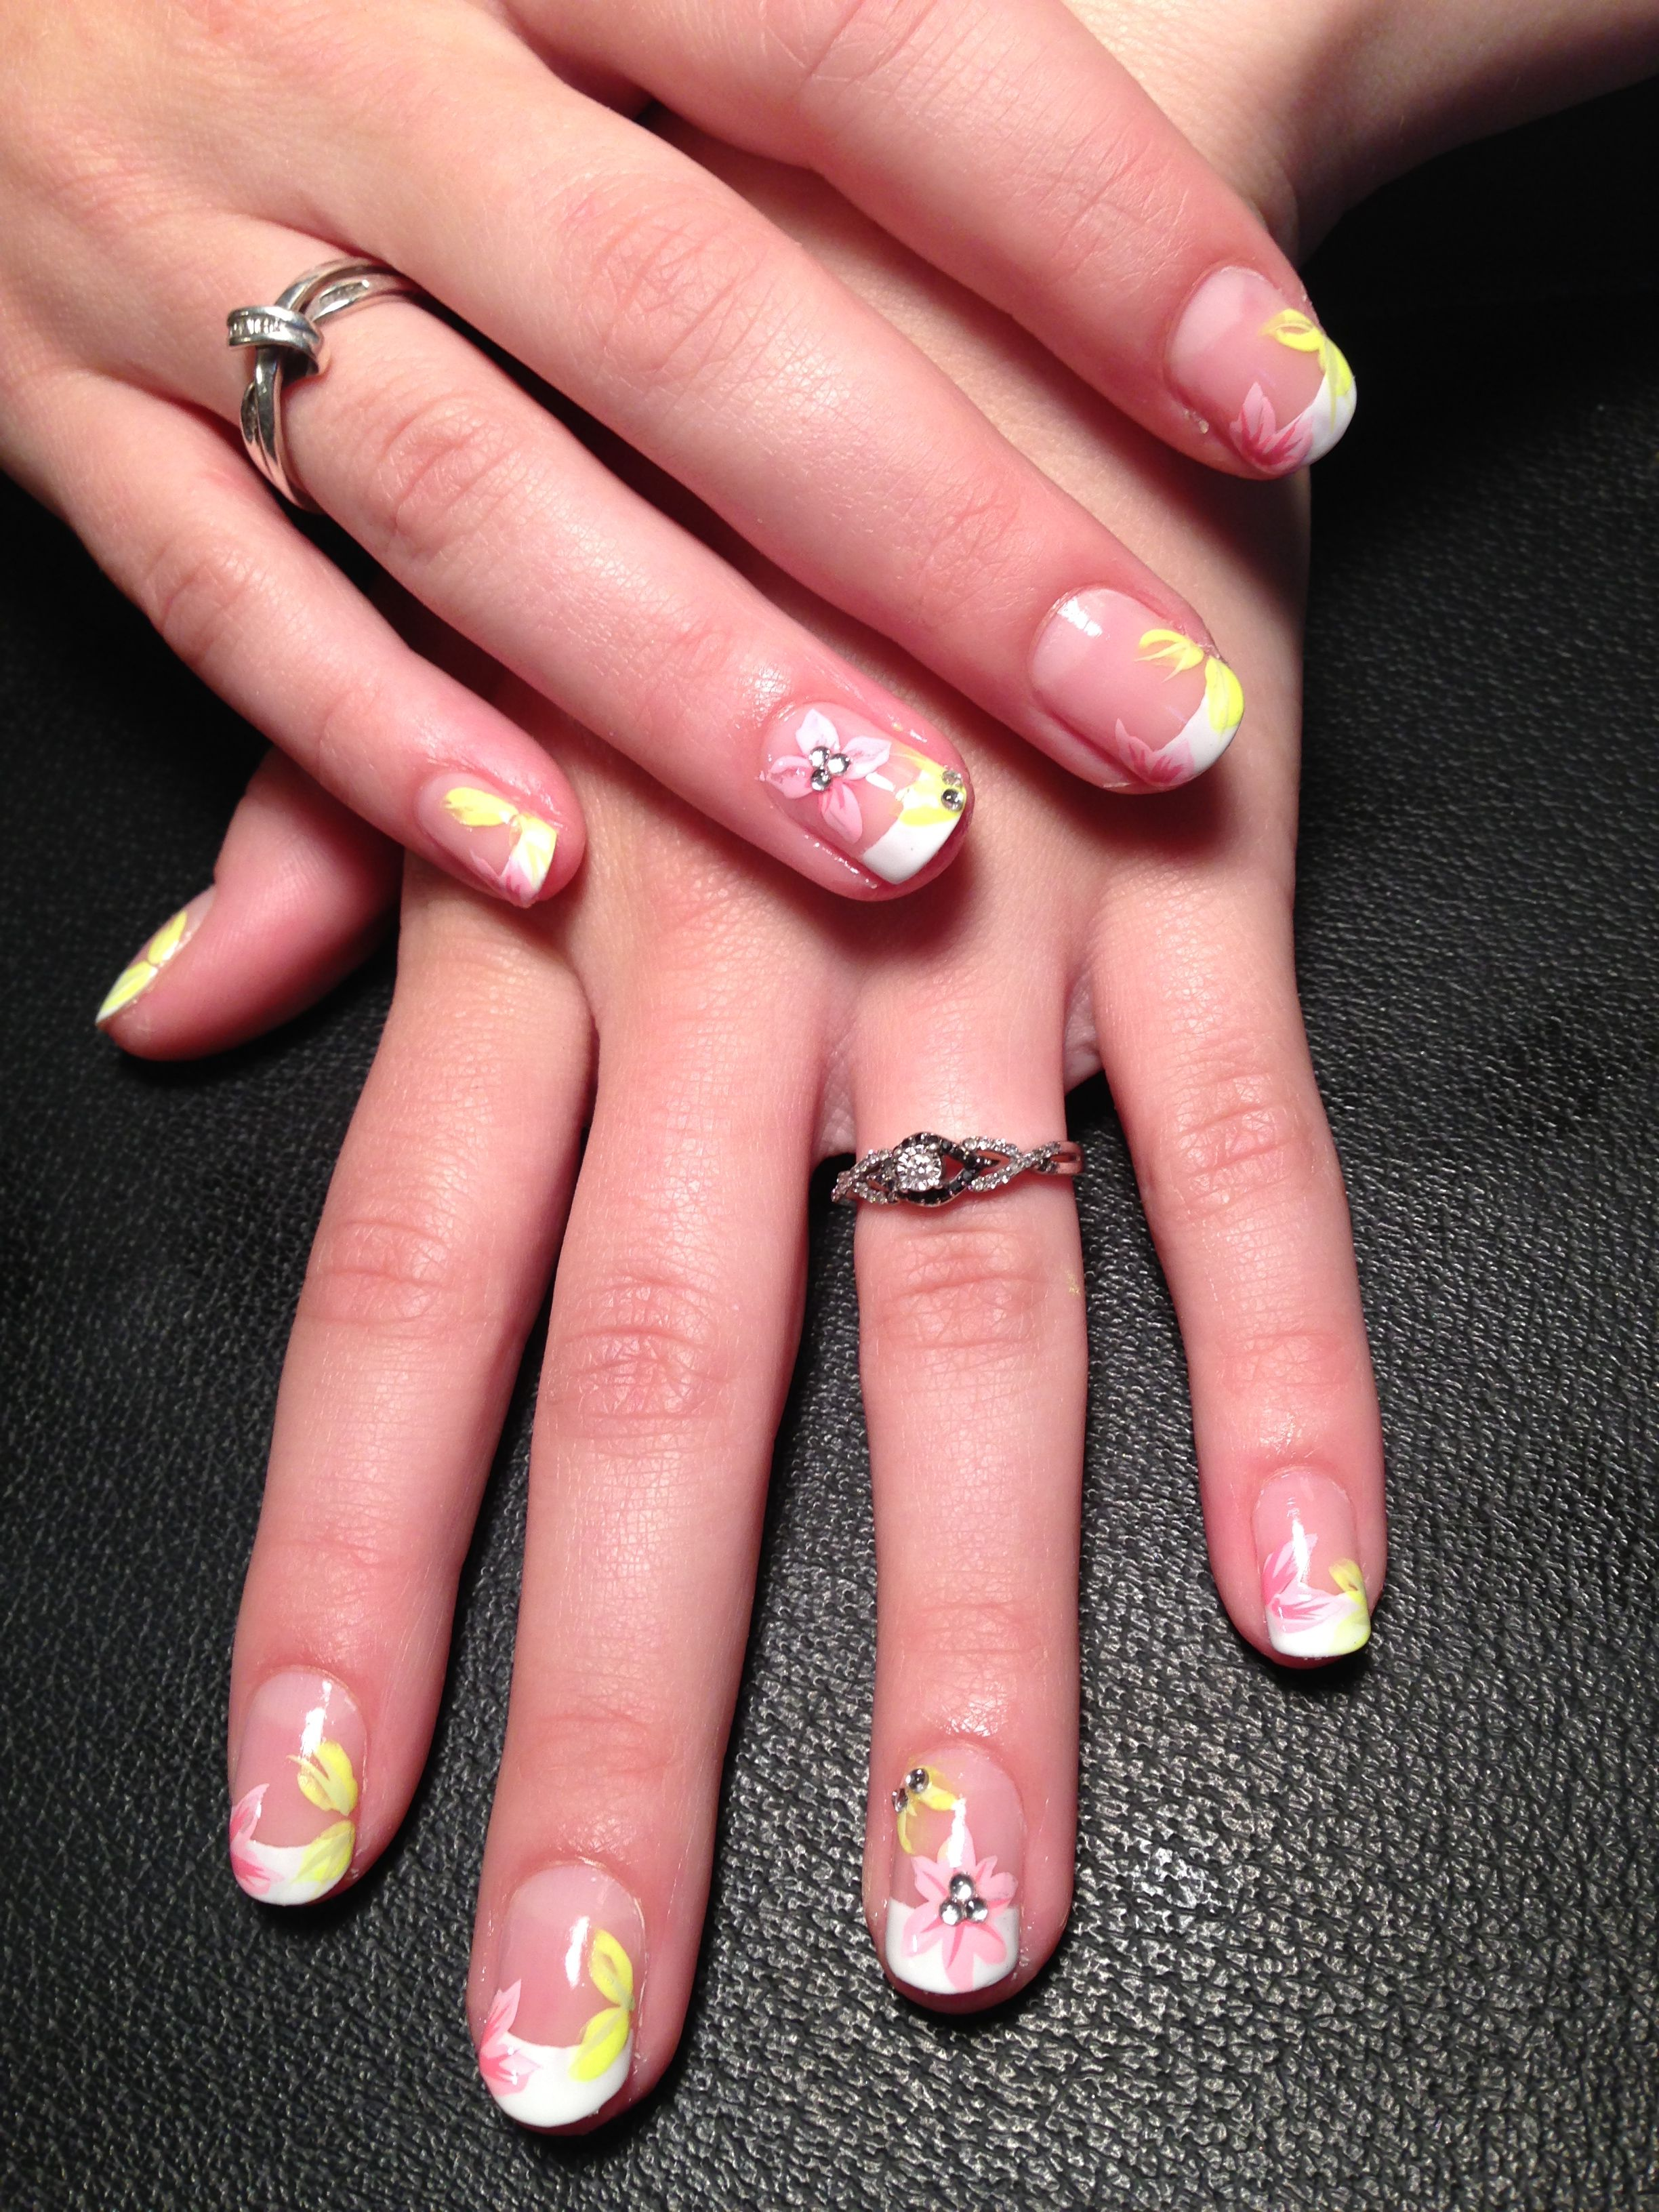 French manicure with hand painted flower nail art design | nail art ...